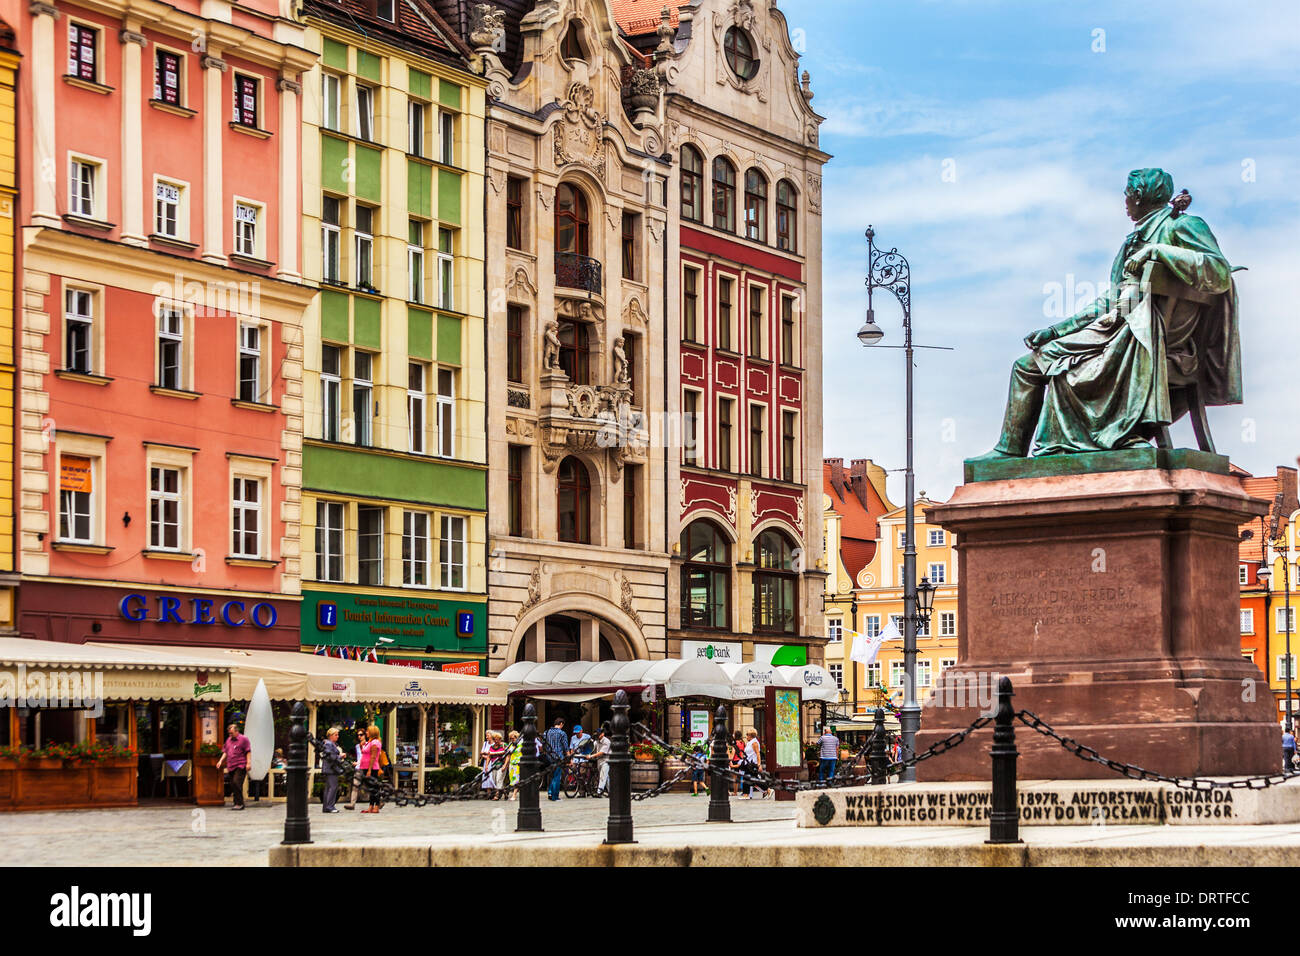 Bronze statue of poet Aleksander Fredro in the Old Town market square in Wroclaw. - Stock Image